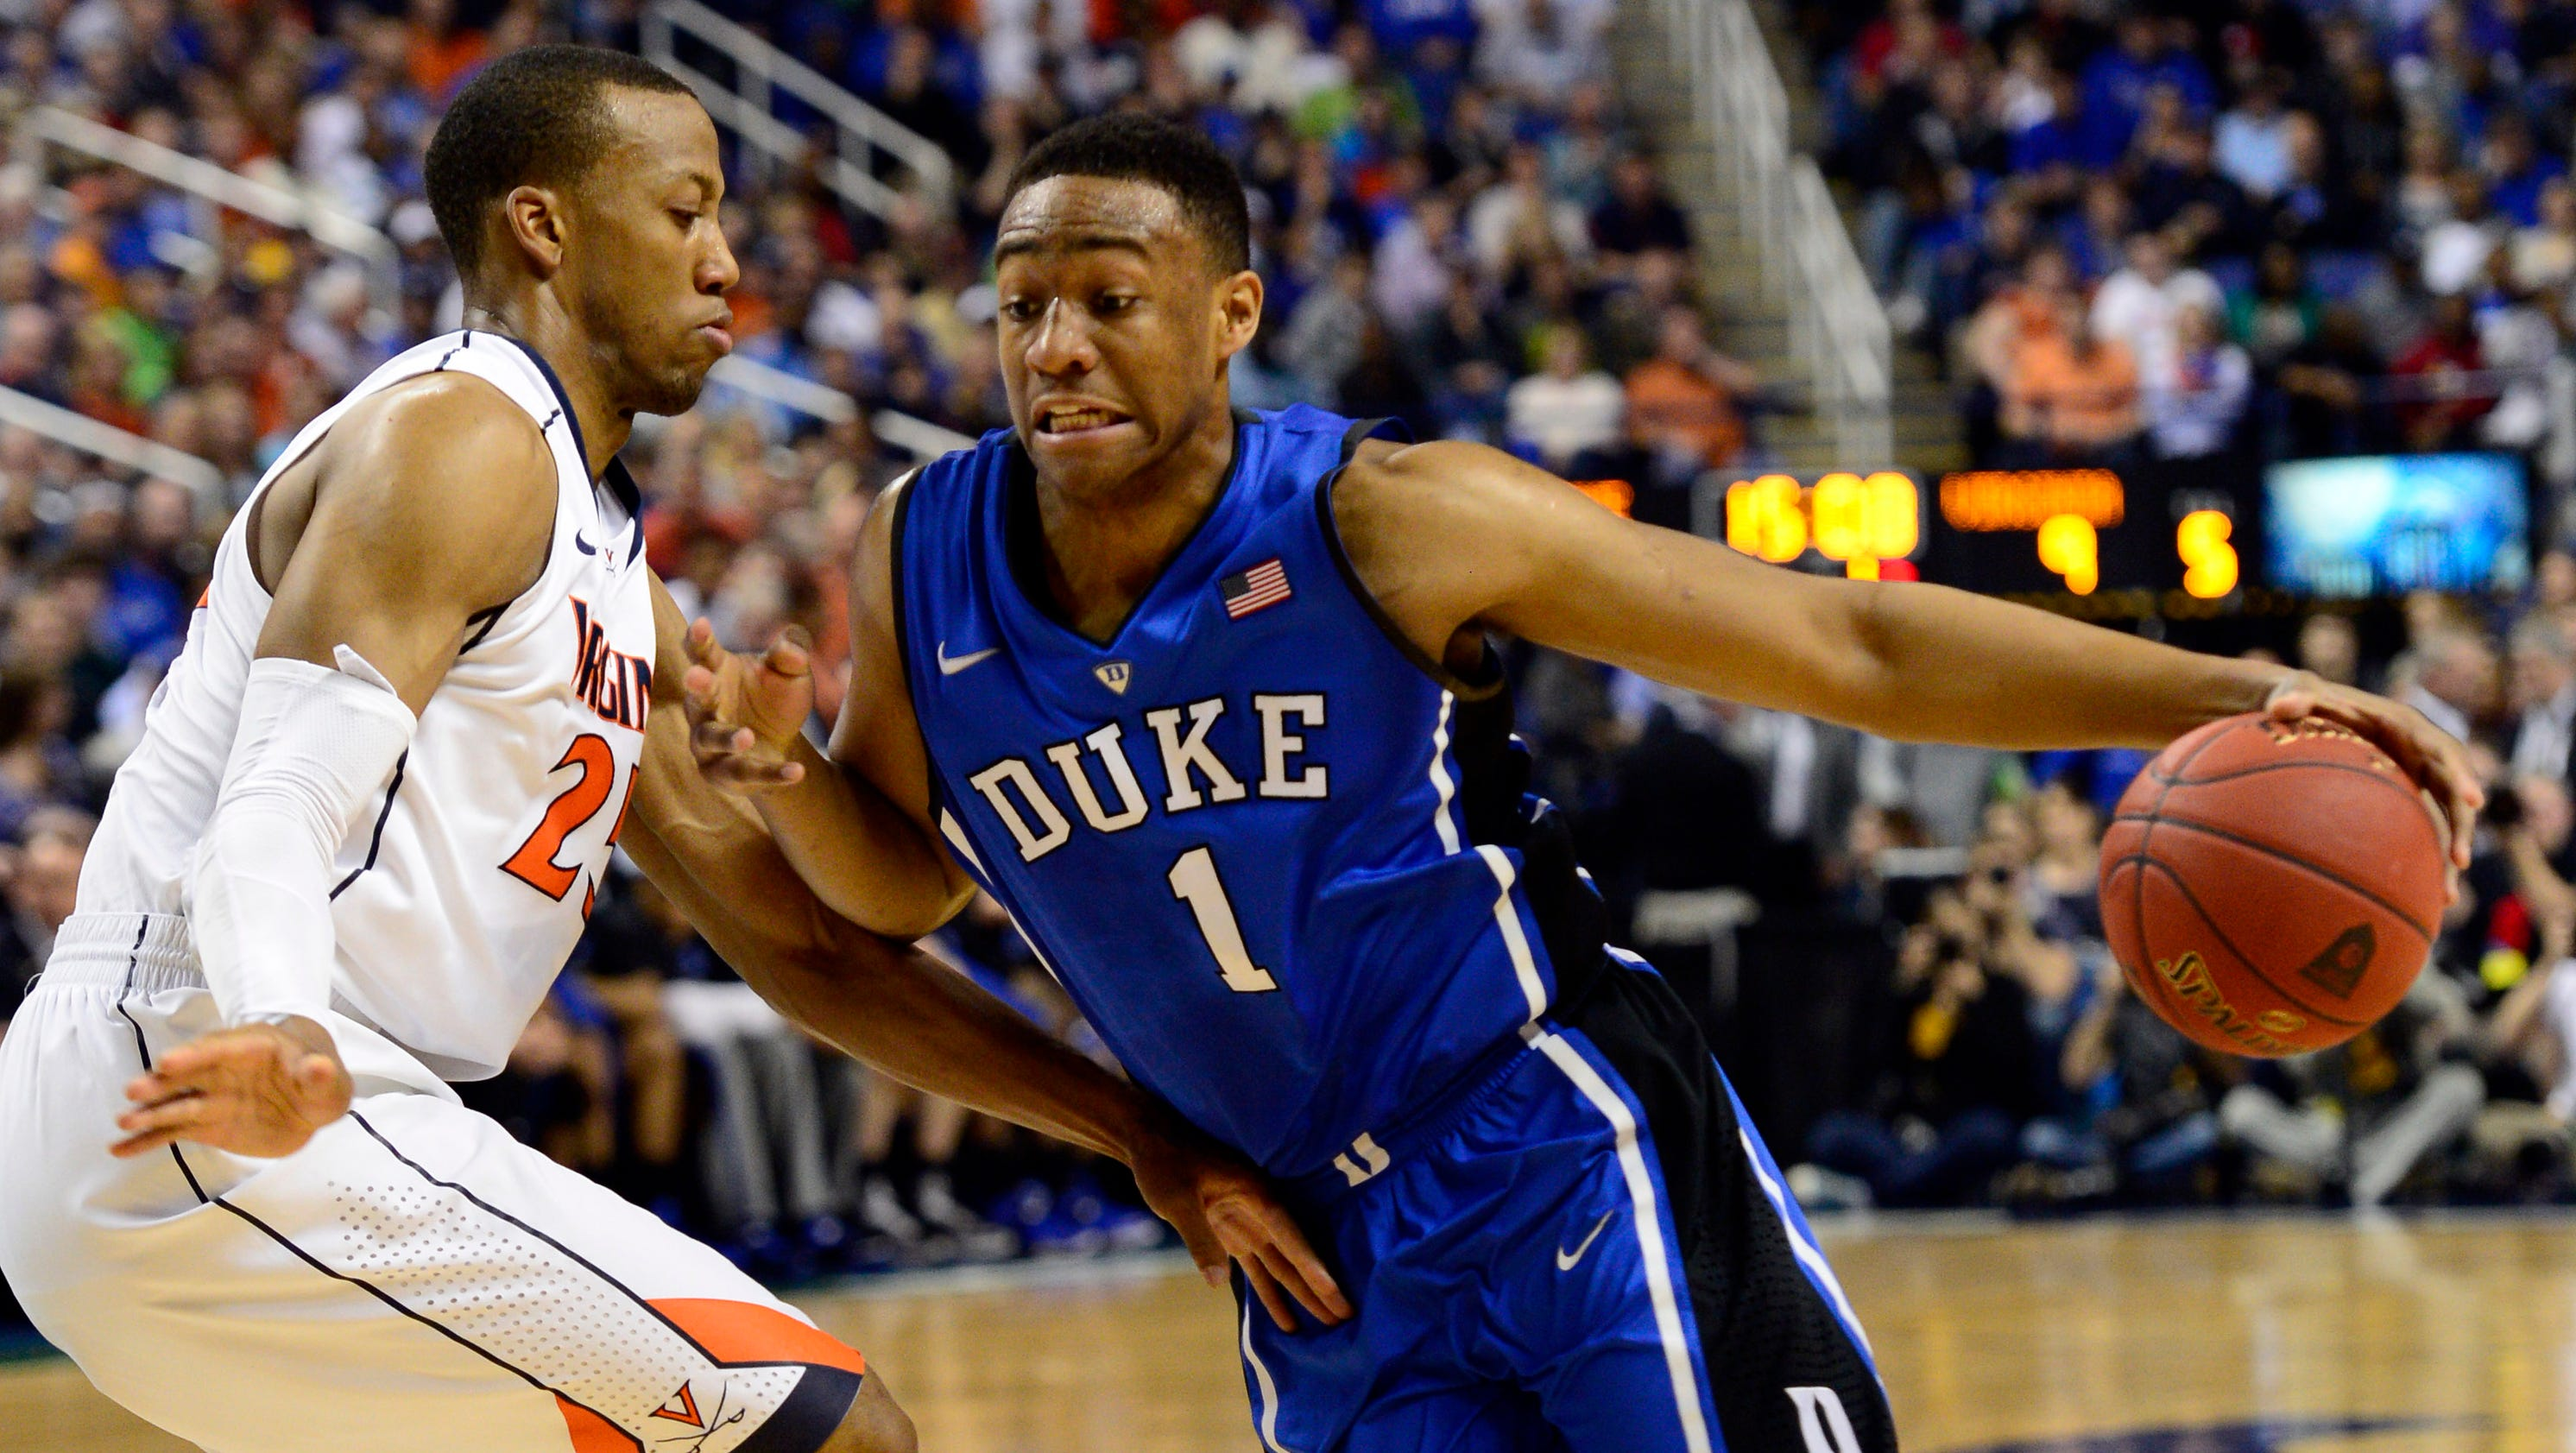 Just like dad: Father-son duos of the 2014 NBA draft Jabari Parker Nba Draft